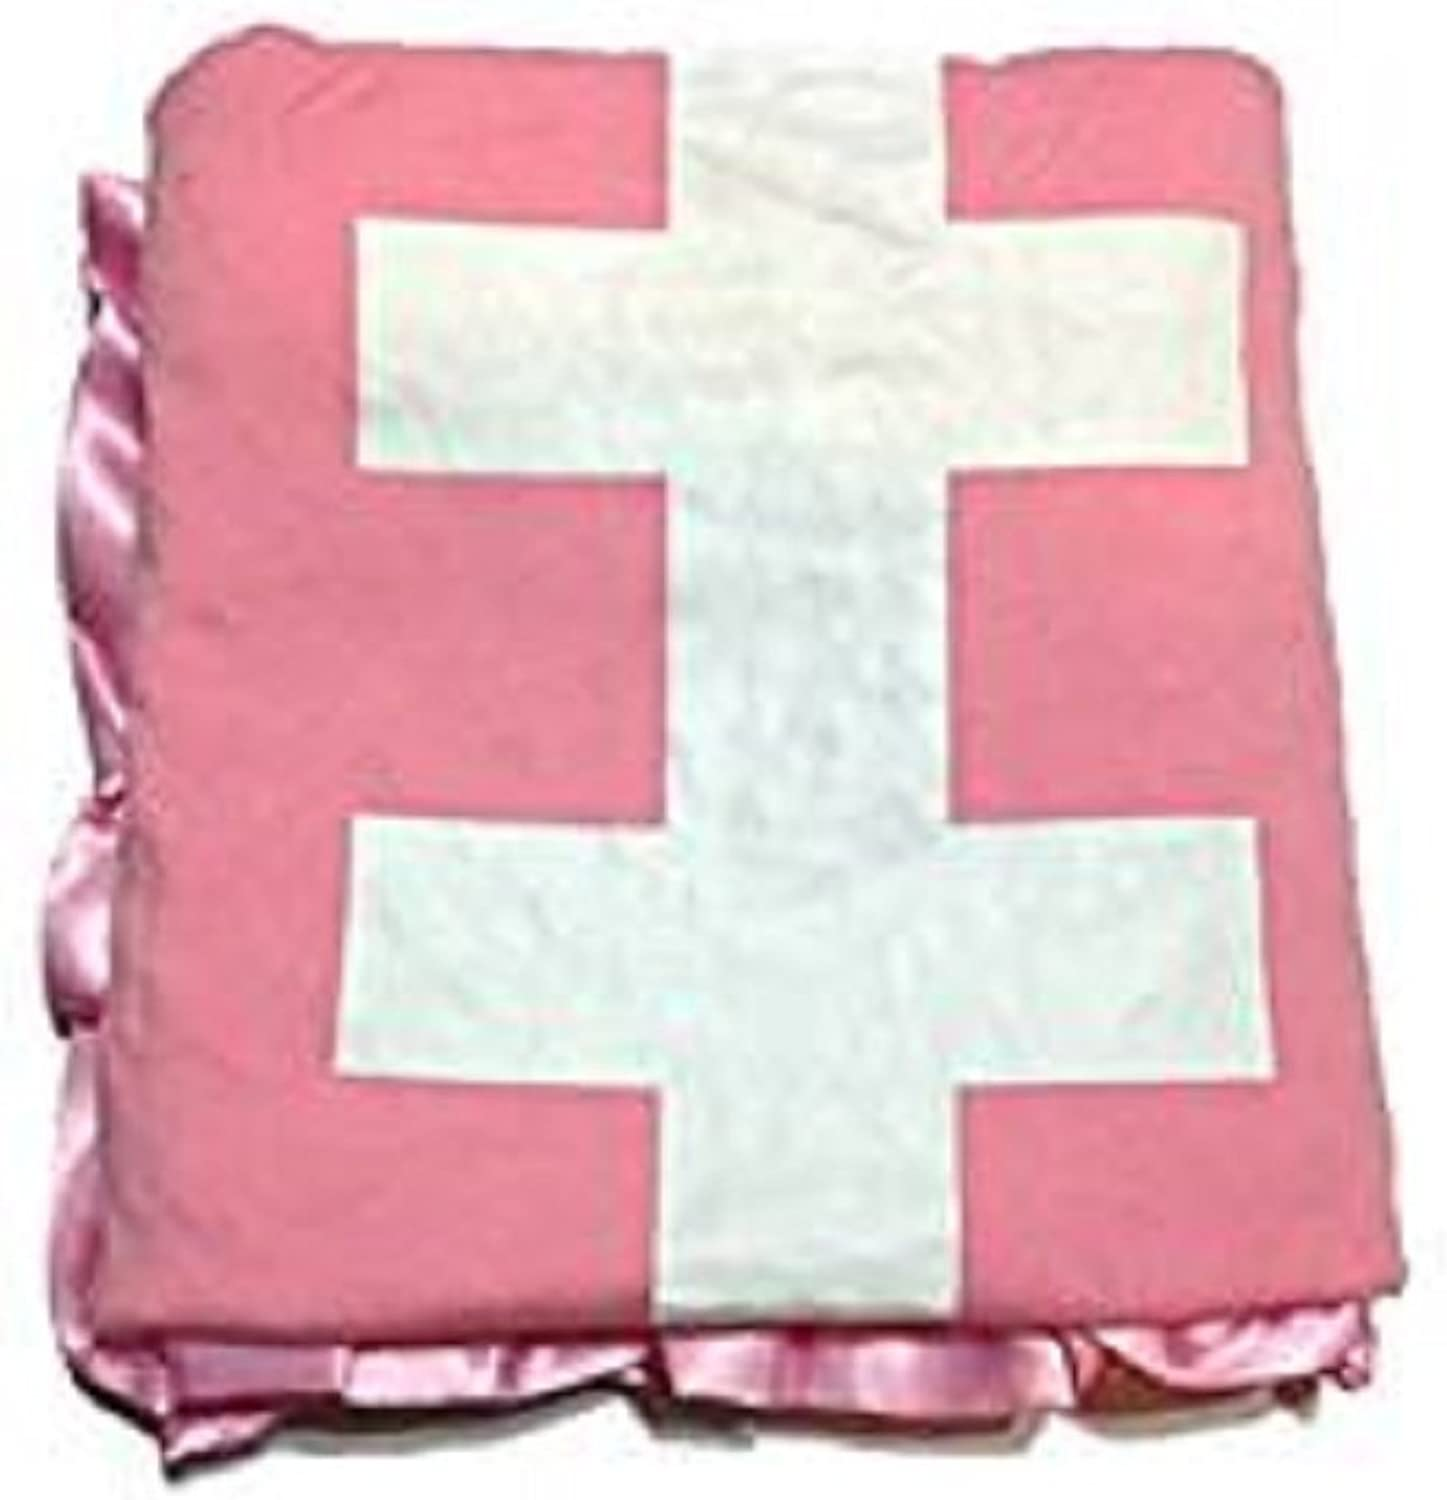 KWC Soft and Cozy Large Minky Minkee Ruffled Edge Baby Shower Throw Blanket (Pink Football, One Size)